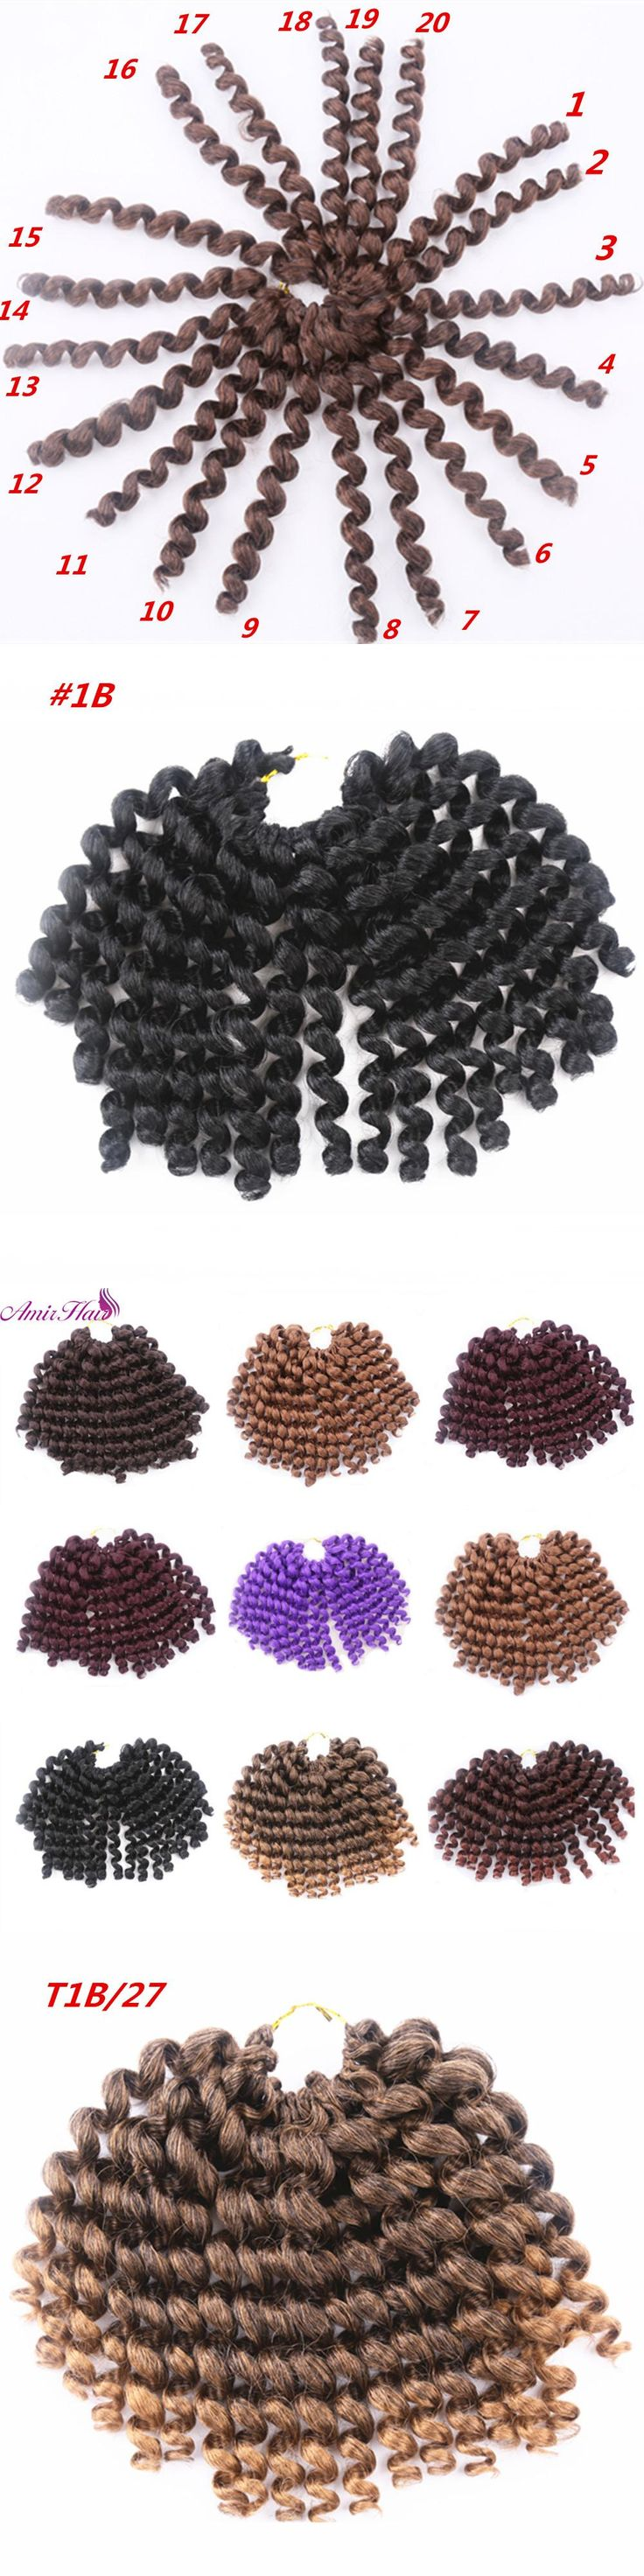 Amir Hair 10inch  Synthetic Curly Braiding Hair with 20 strands Short  Black and Blonde  Wand Curl Havana mambo Crochet  Braids